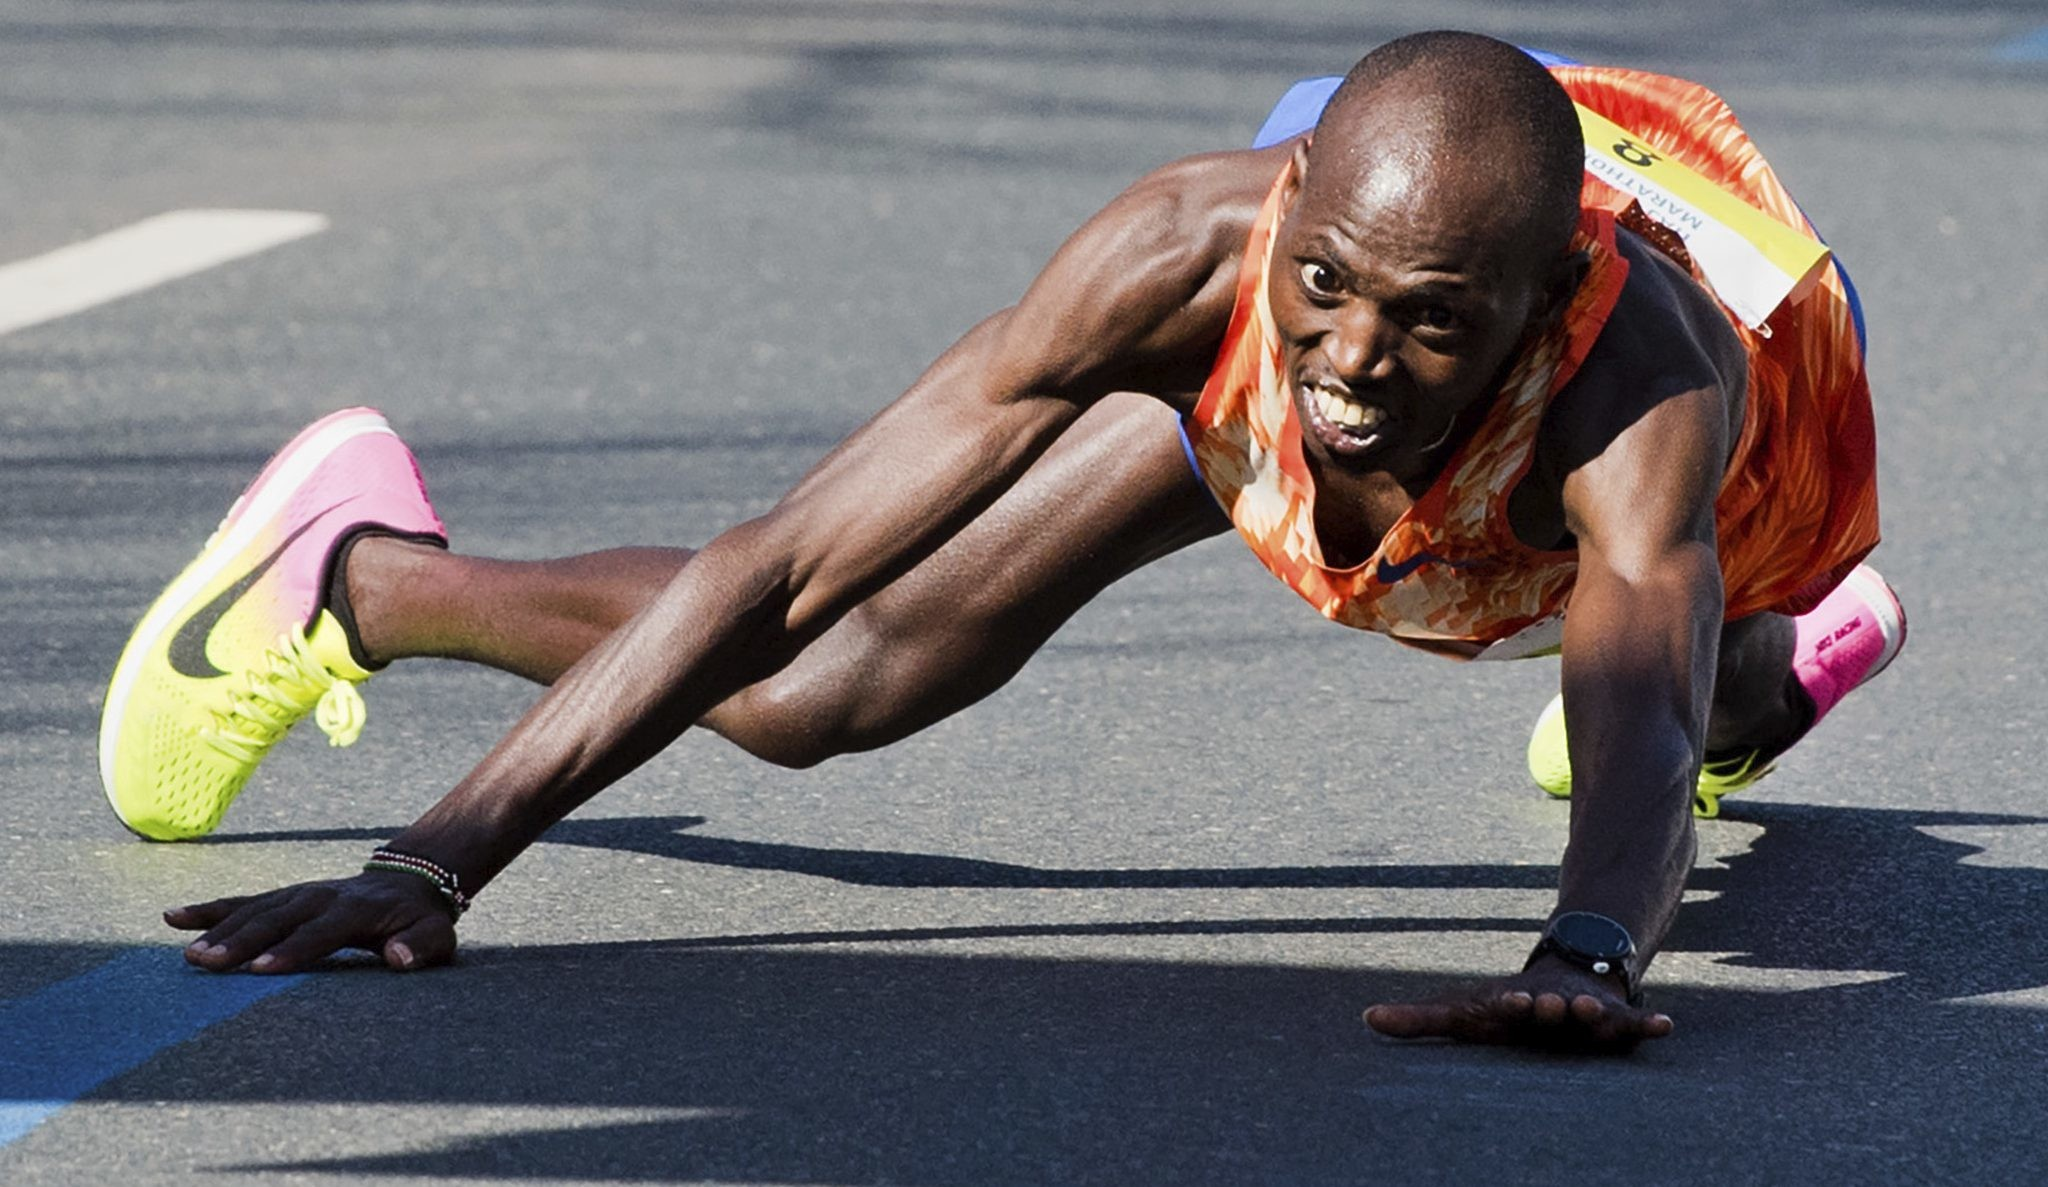 Kenya's Michael Kunyuga was nearing the finish line of the Hannover Marathon when the unexpected happened